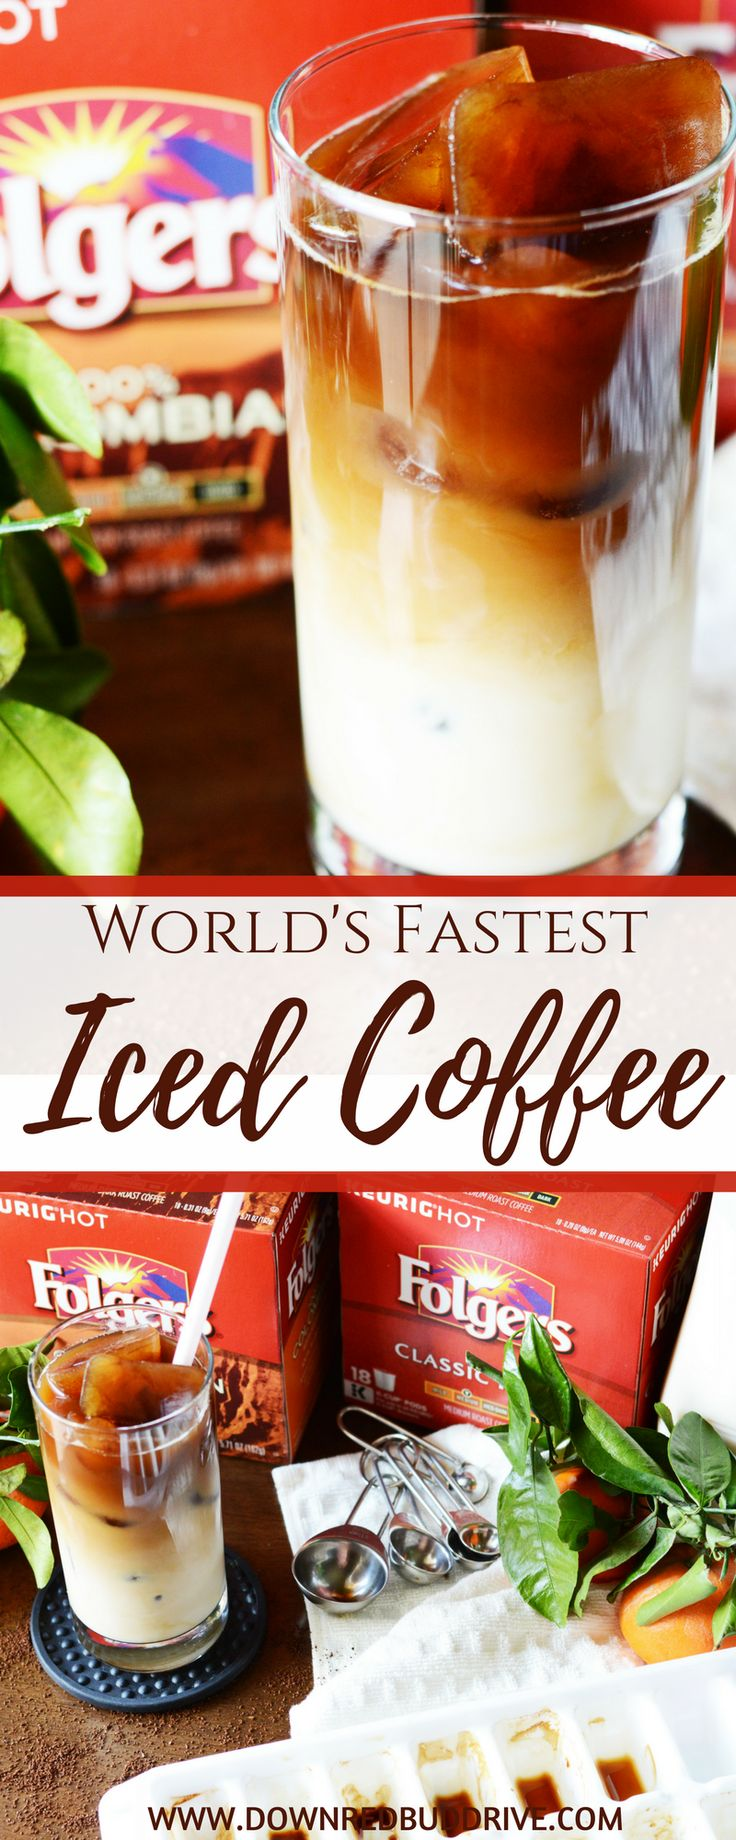 World's Fastest Iced Coffee Recipe | Iced Coffee | Iced Coffee Recipe | Easy Iced Coffee Recipe | Cold Brew | Cold Brew Coffee | Cold Coffee | Cold Coffee Recipe | Iced Latte Recipe | Down Redbud Drive #icedcoffee #ad #fromwhereisip #AlwaysTheBestPart via @DownRedbudDrive